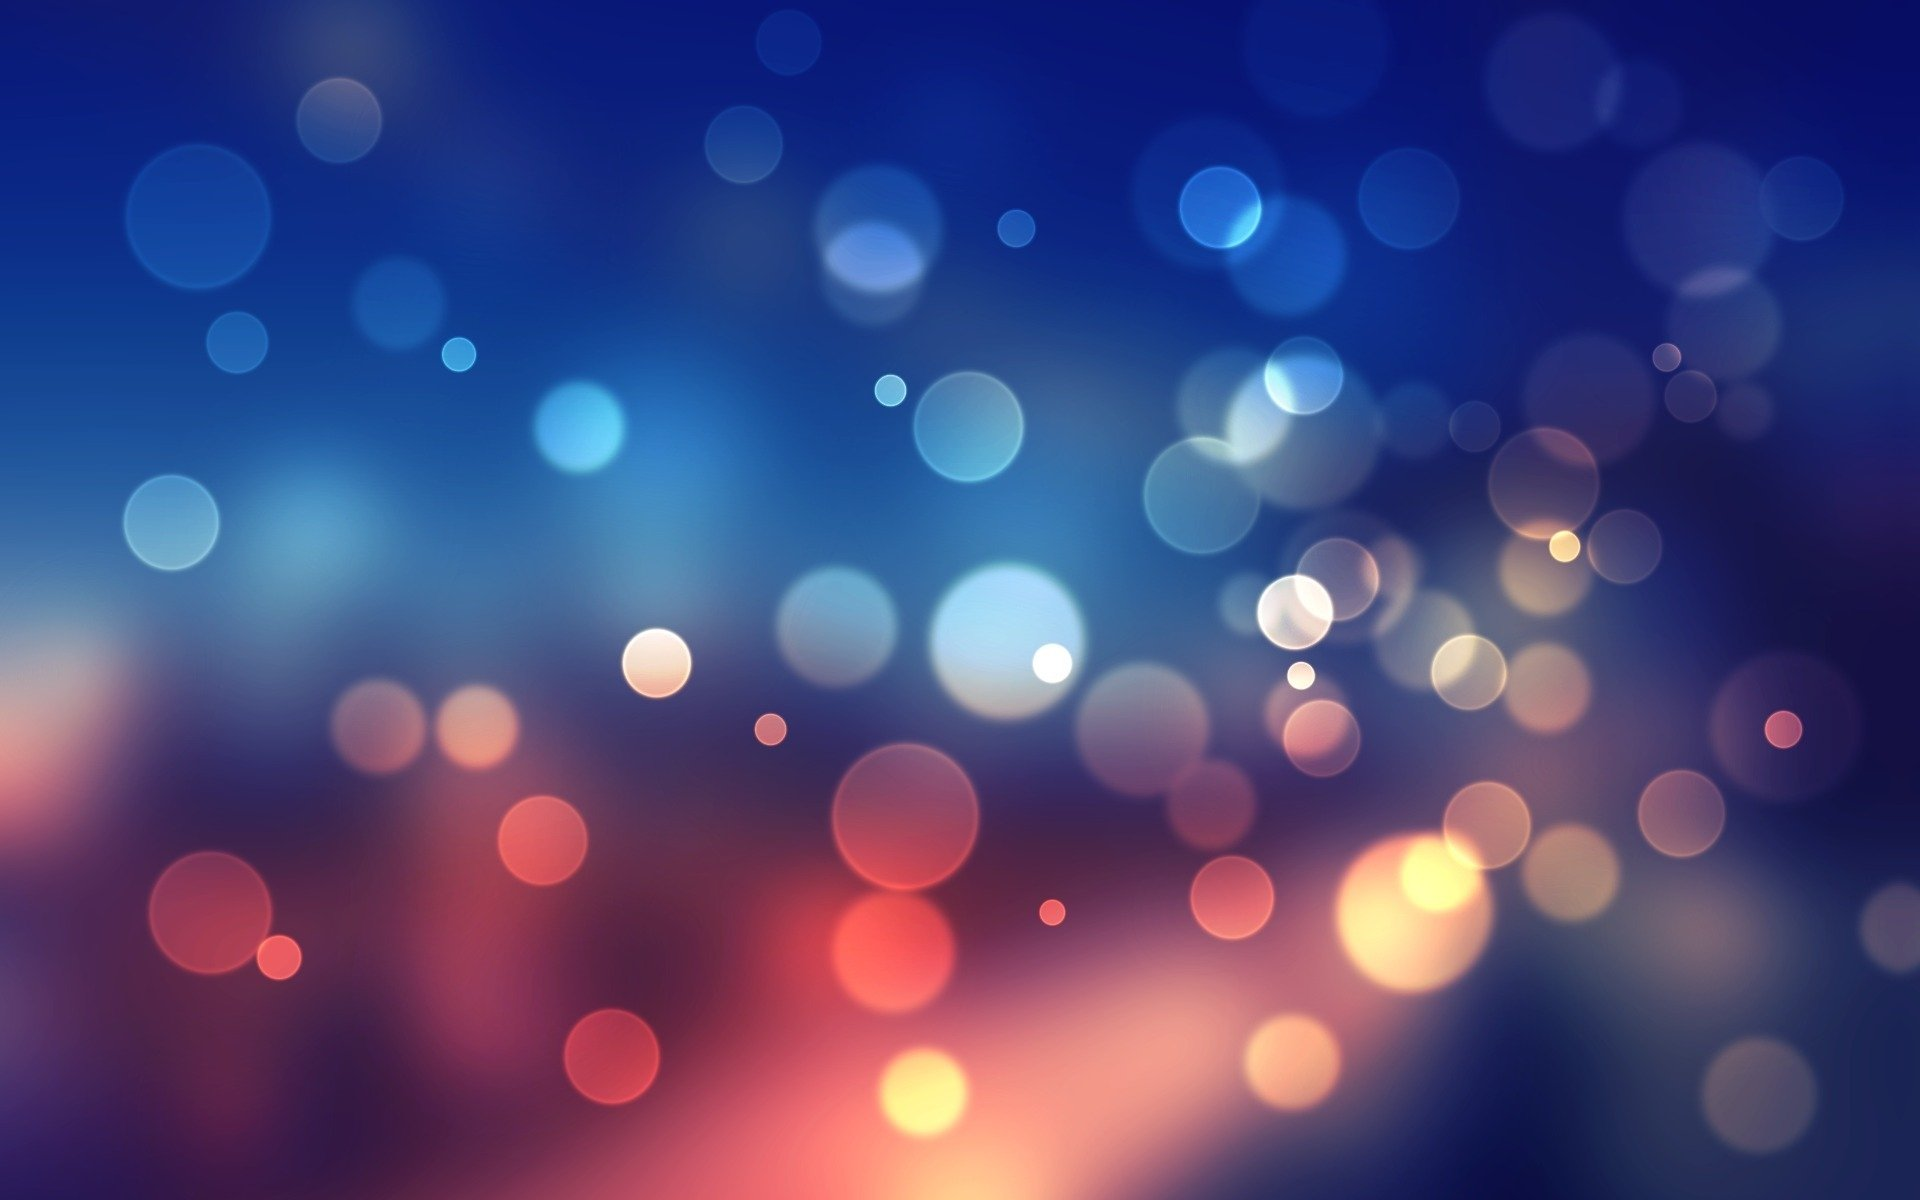 Hd wallpaper bokeh - Hd Wallpaper Background Id 212395 1920x1200 Artistic Bokeh